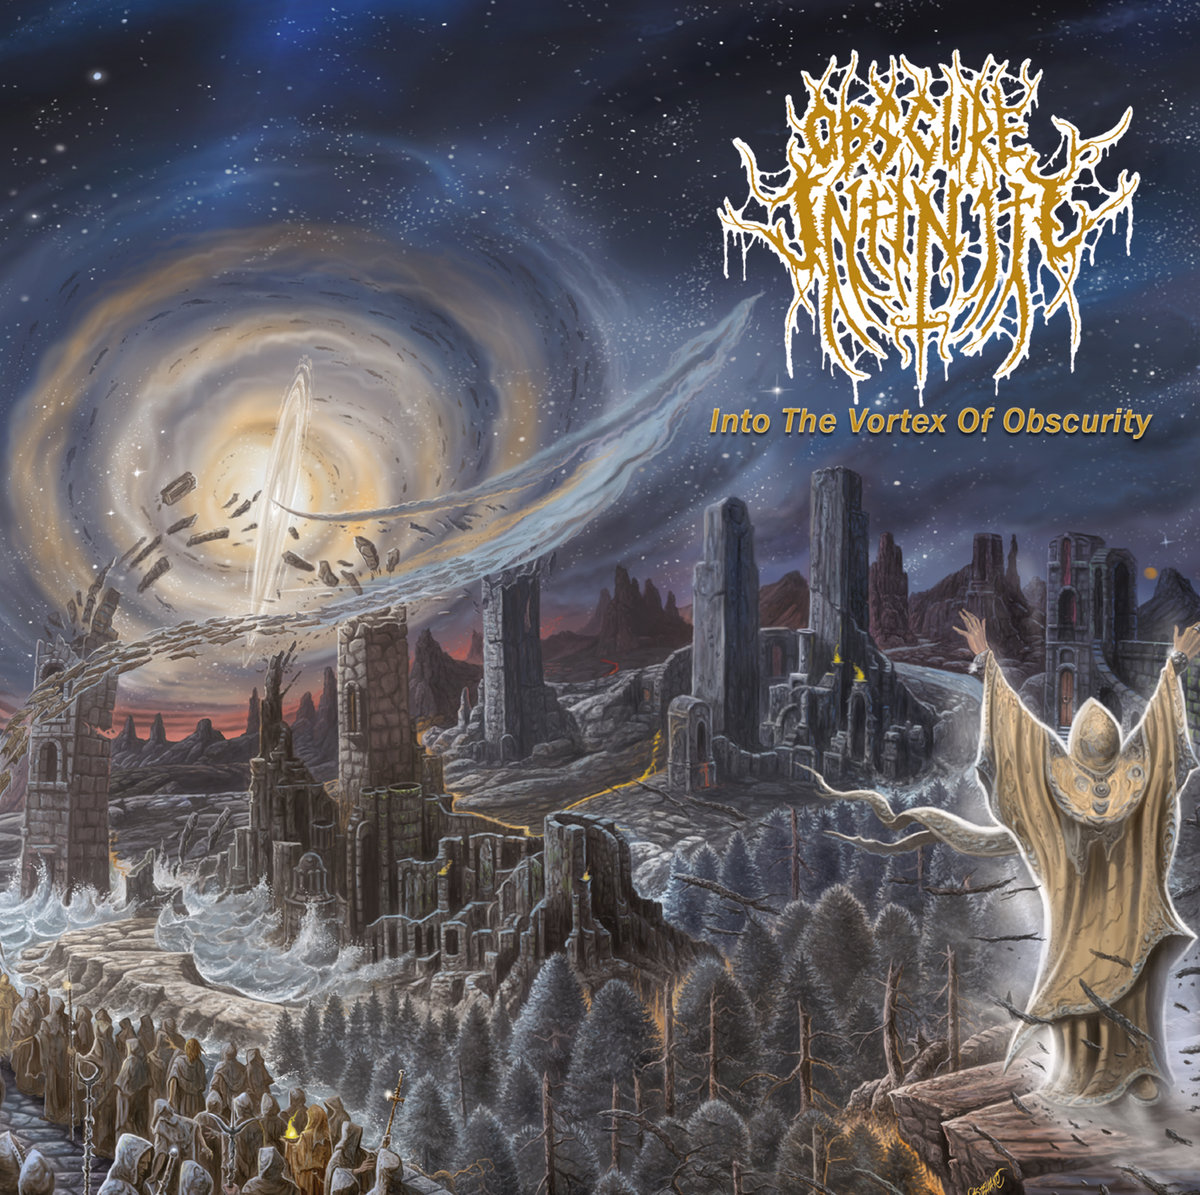 Kritik zu Obscure Infinity INTO THE VORTEX OF OBSCURITY